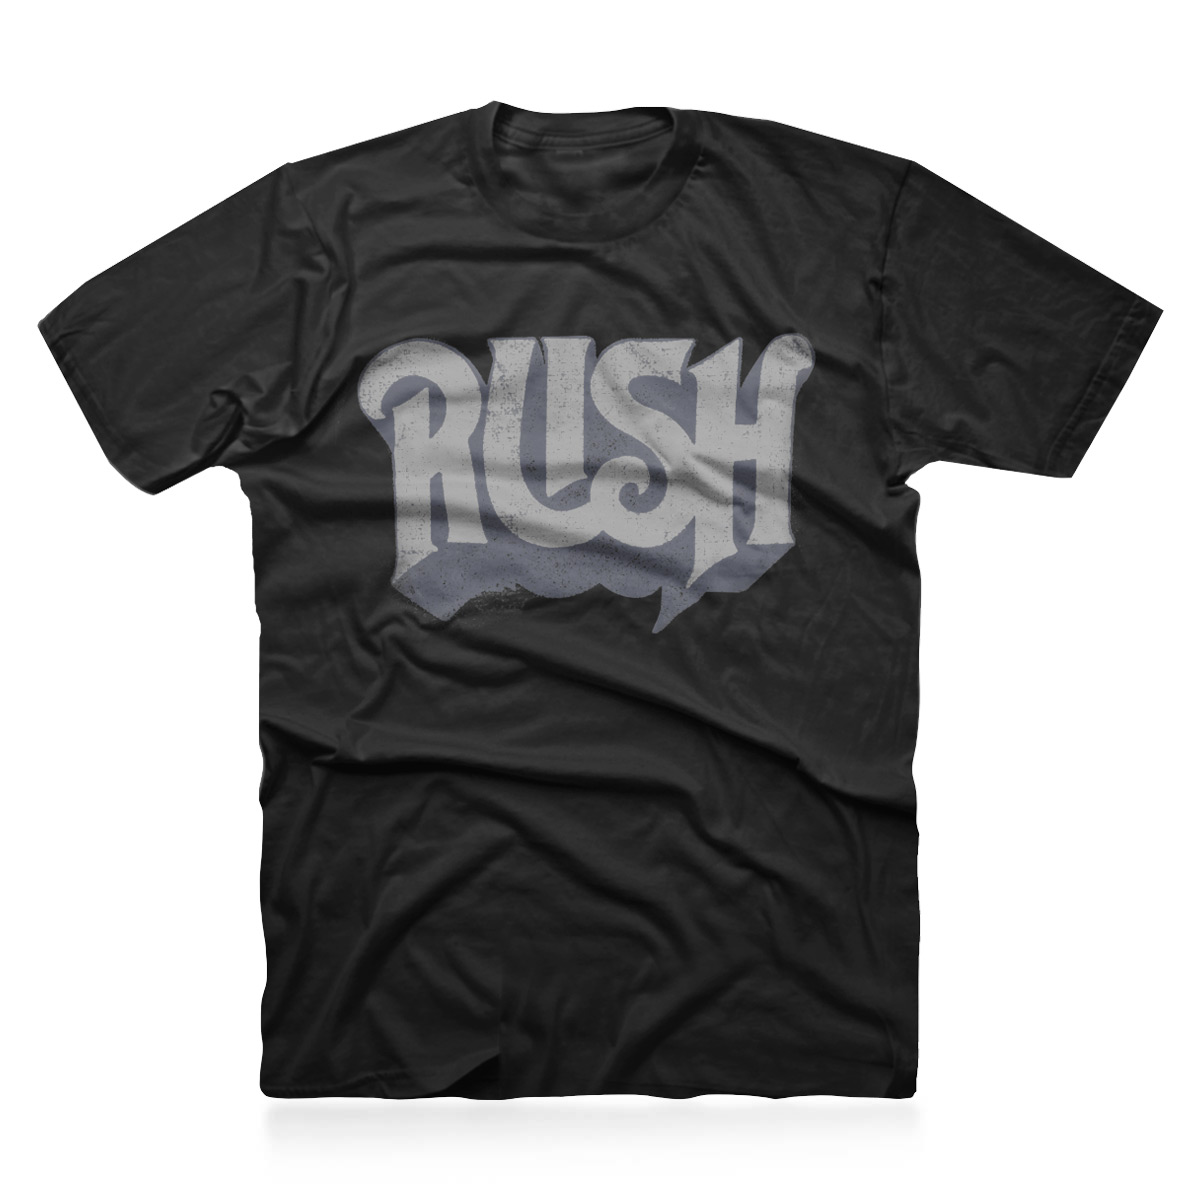 Rush Original T-Shirt